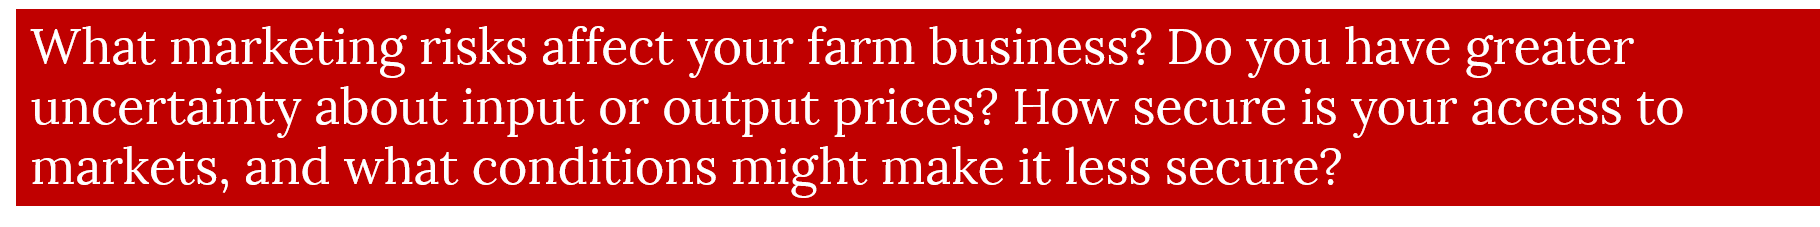 What marketing risks affect your farm business? Do you have greater uncertainty about input or output prices? How secure is your access to markets, and what conditions might make it less secure?